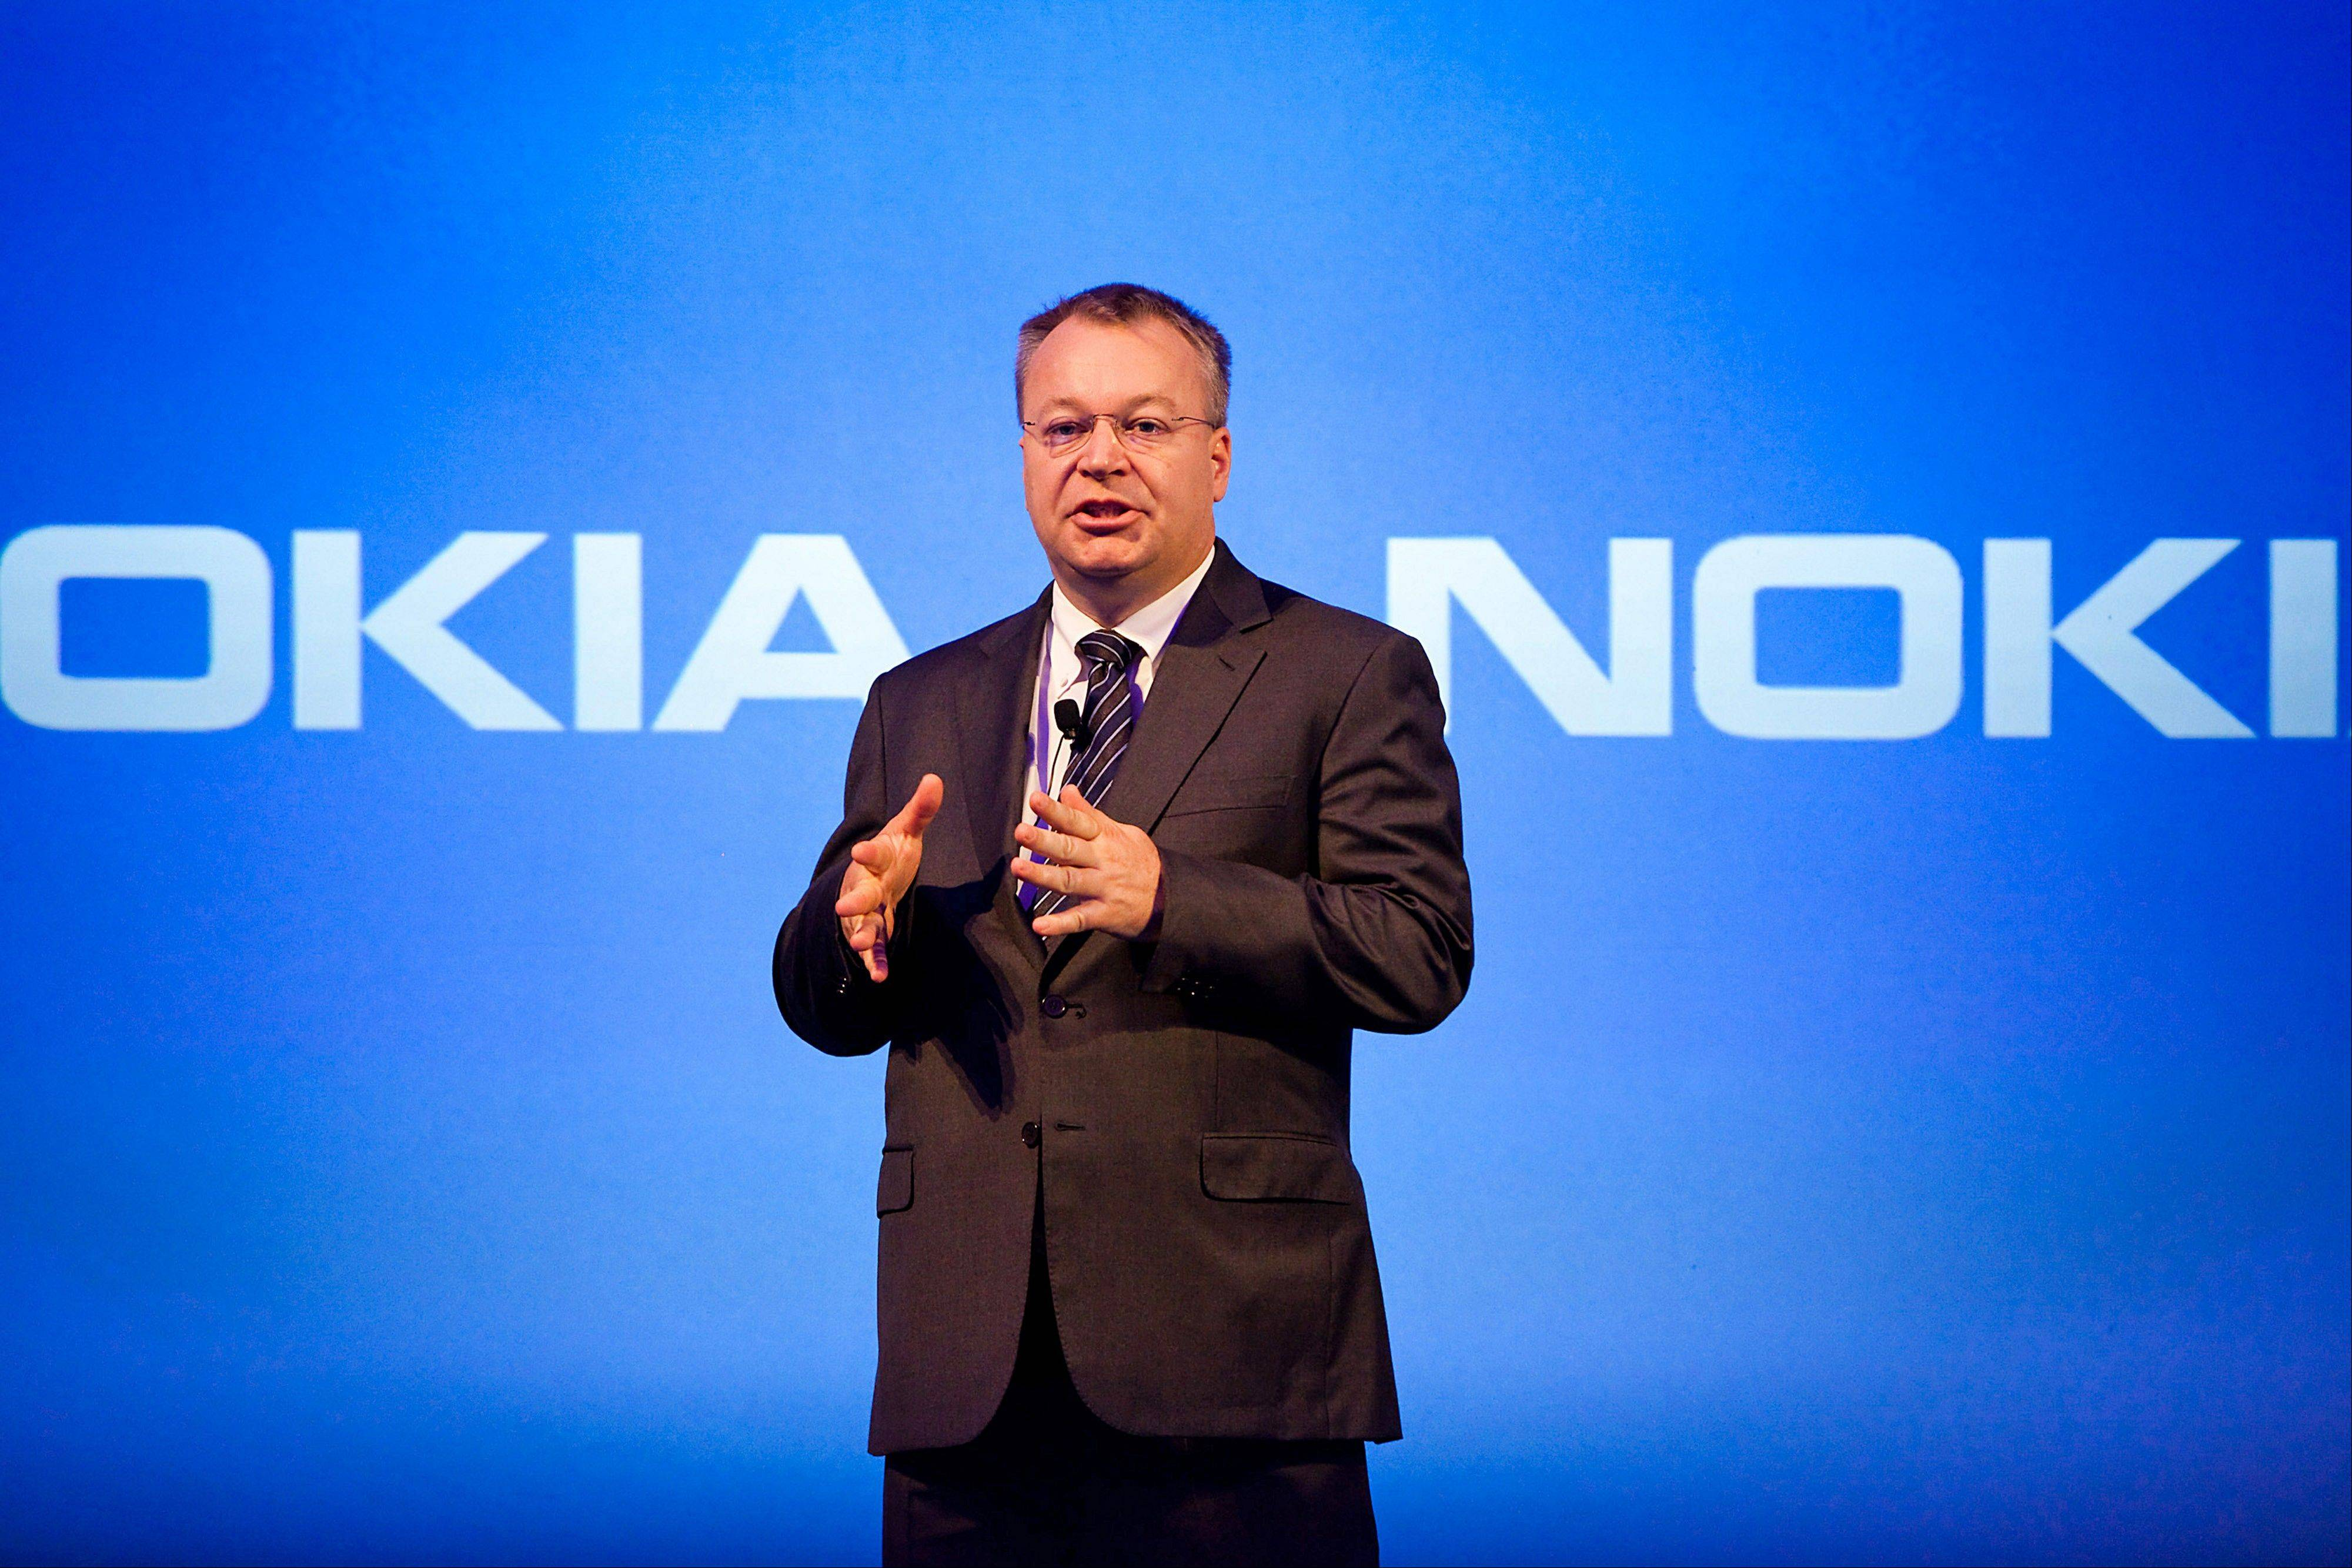 Stephen Elop, outgoing chief executive officer of Nokia Oyj, speaks Tuesday during a news conference at the Dipoli conference center in Espoo, Finland. Microsoft Corp. agreed to buy Nokia Oyj�s handset business and license its patents for$7.2 billion, casting together the lot of two companies trying to stay relevant against fleet-footed technology rivals.